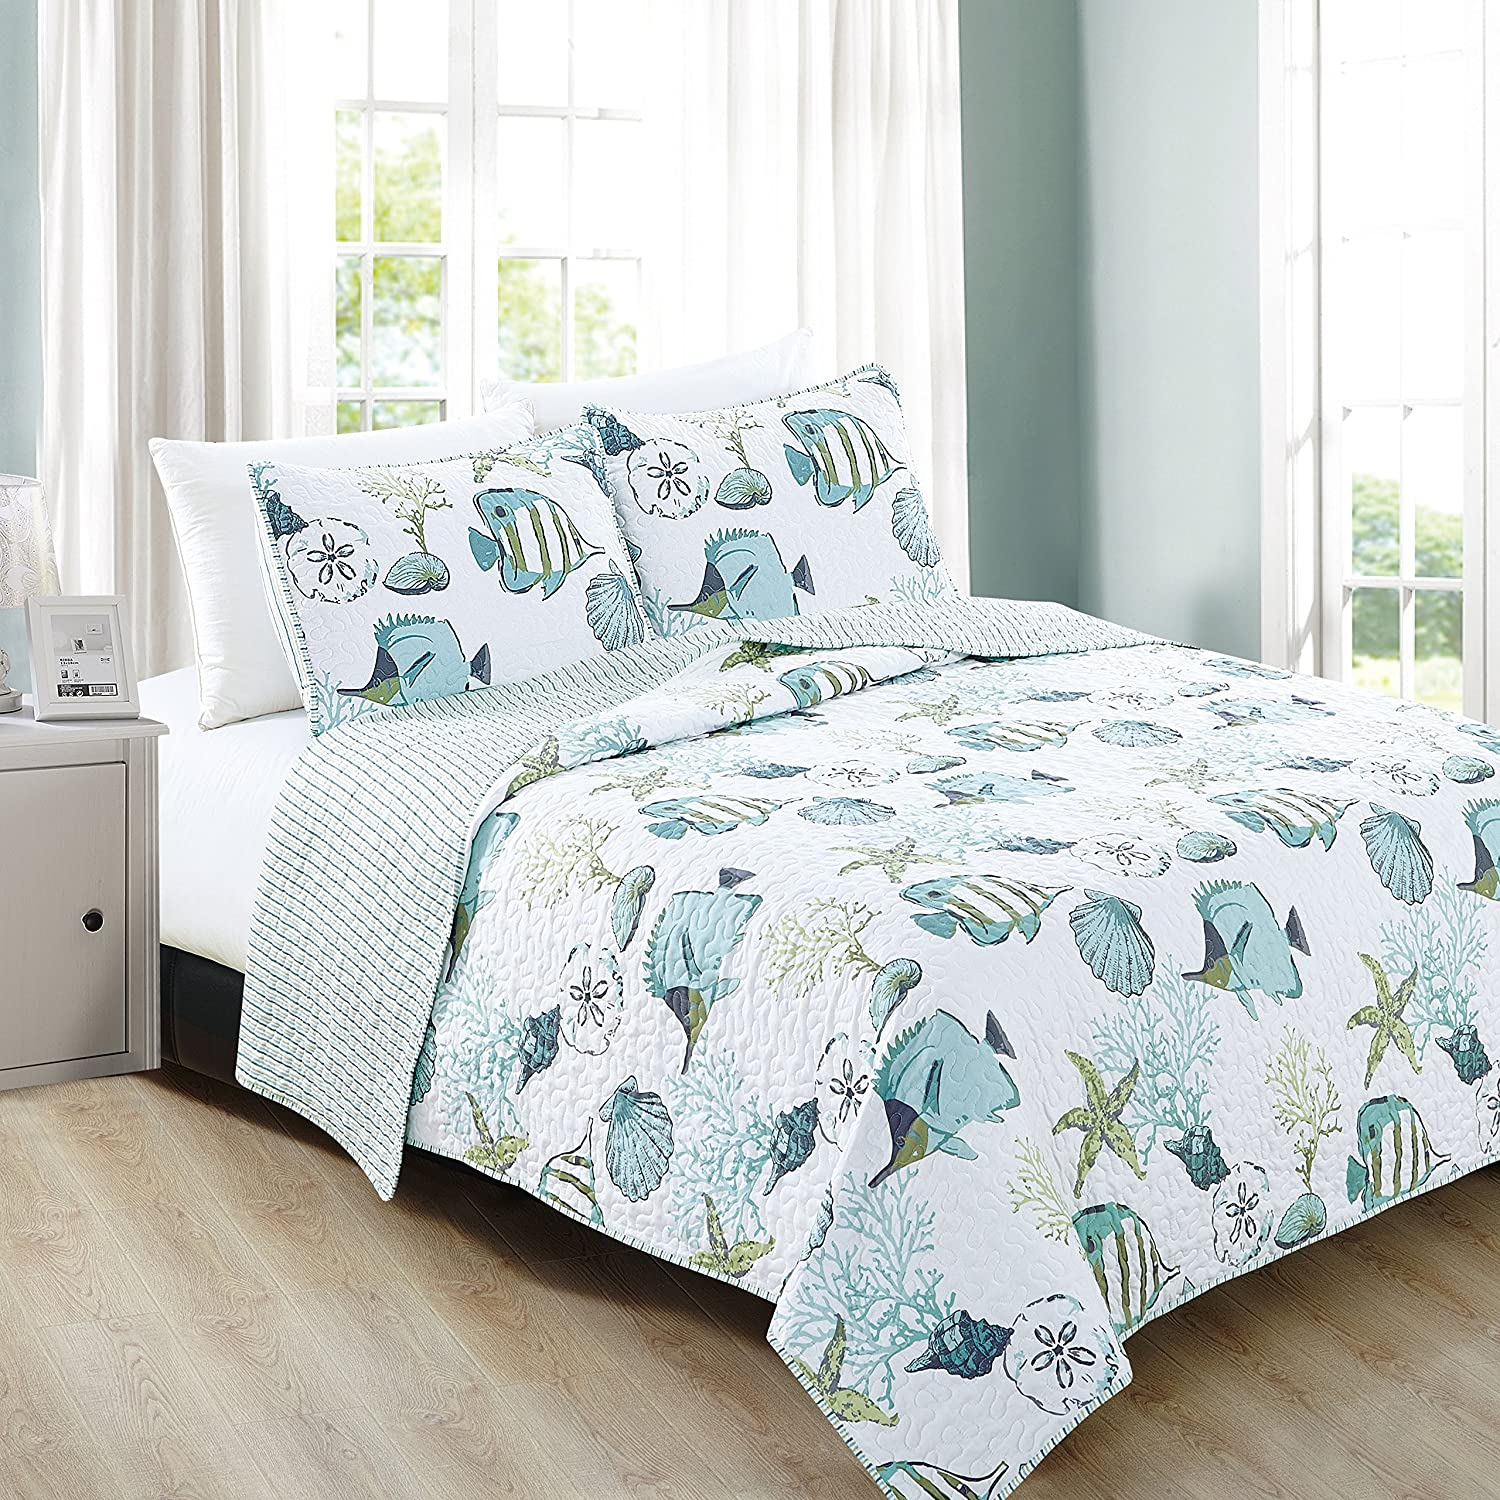 3-Piece Coastal Beach Theme Quilt Set with Shams